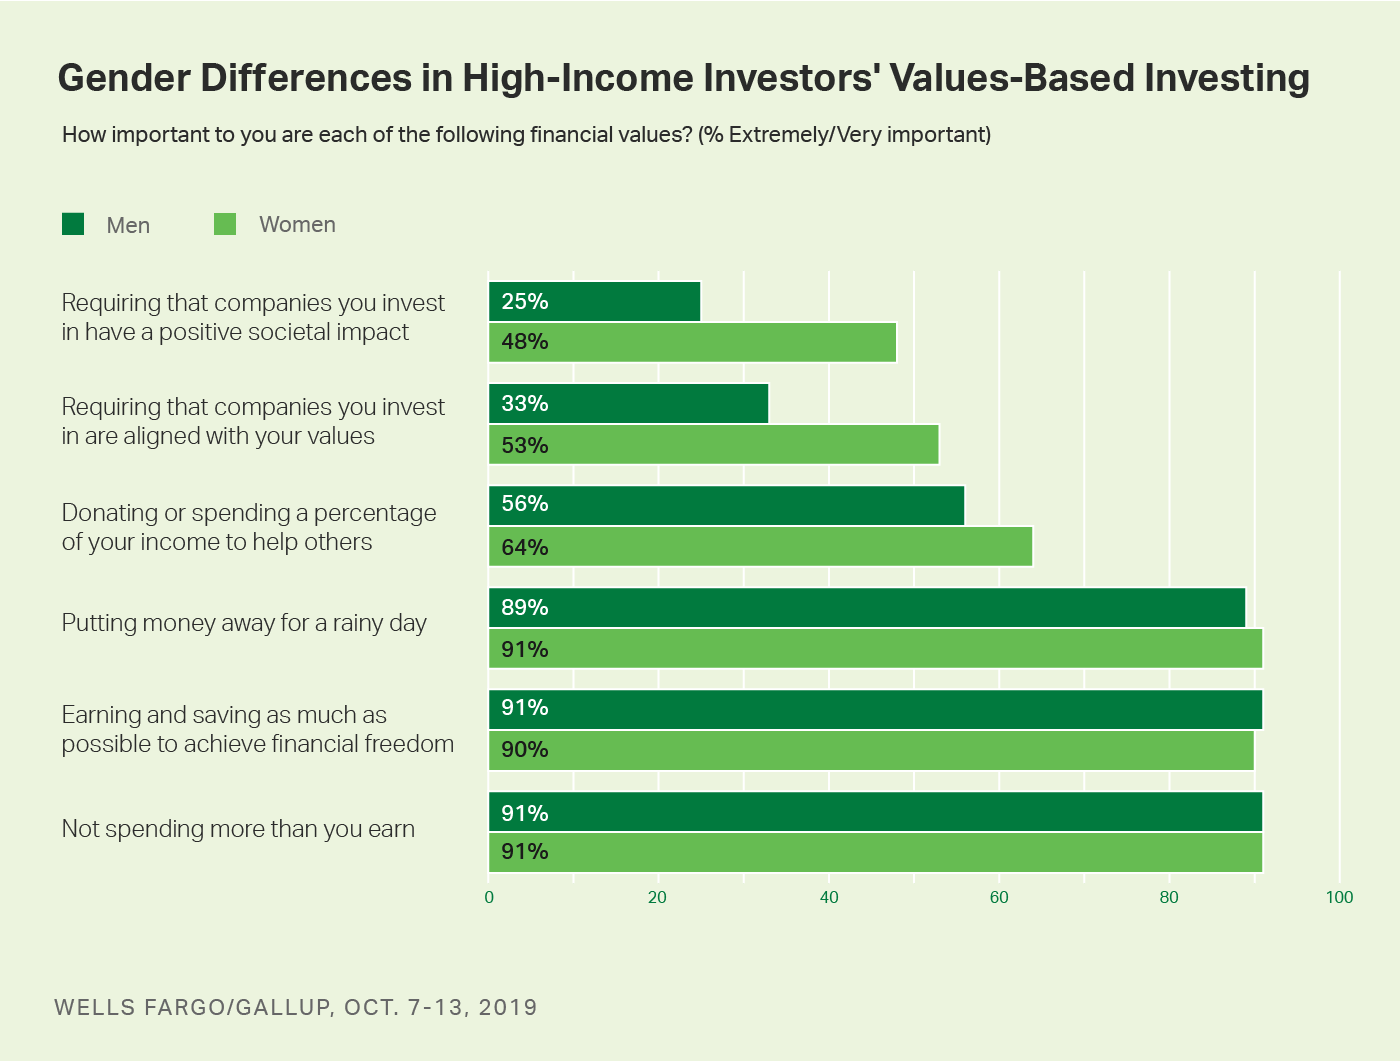 Bar chart. Gender differences in upper-income investors' values-based investing.